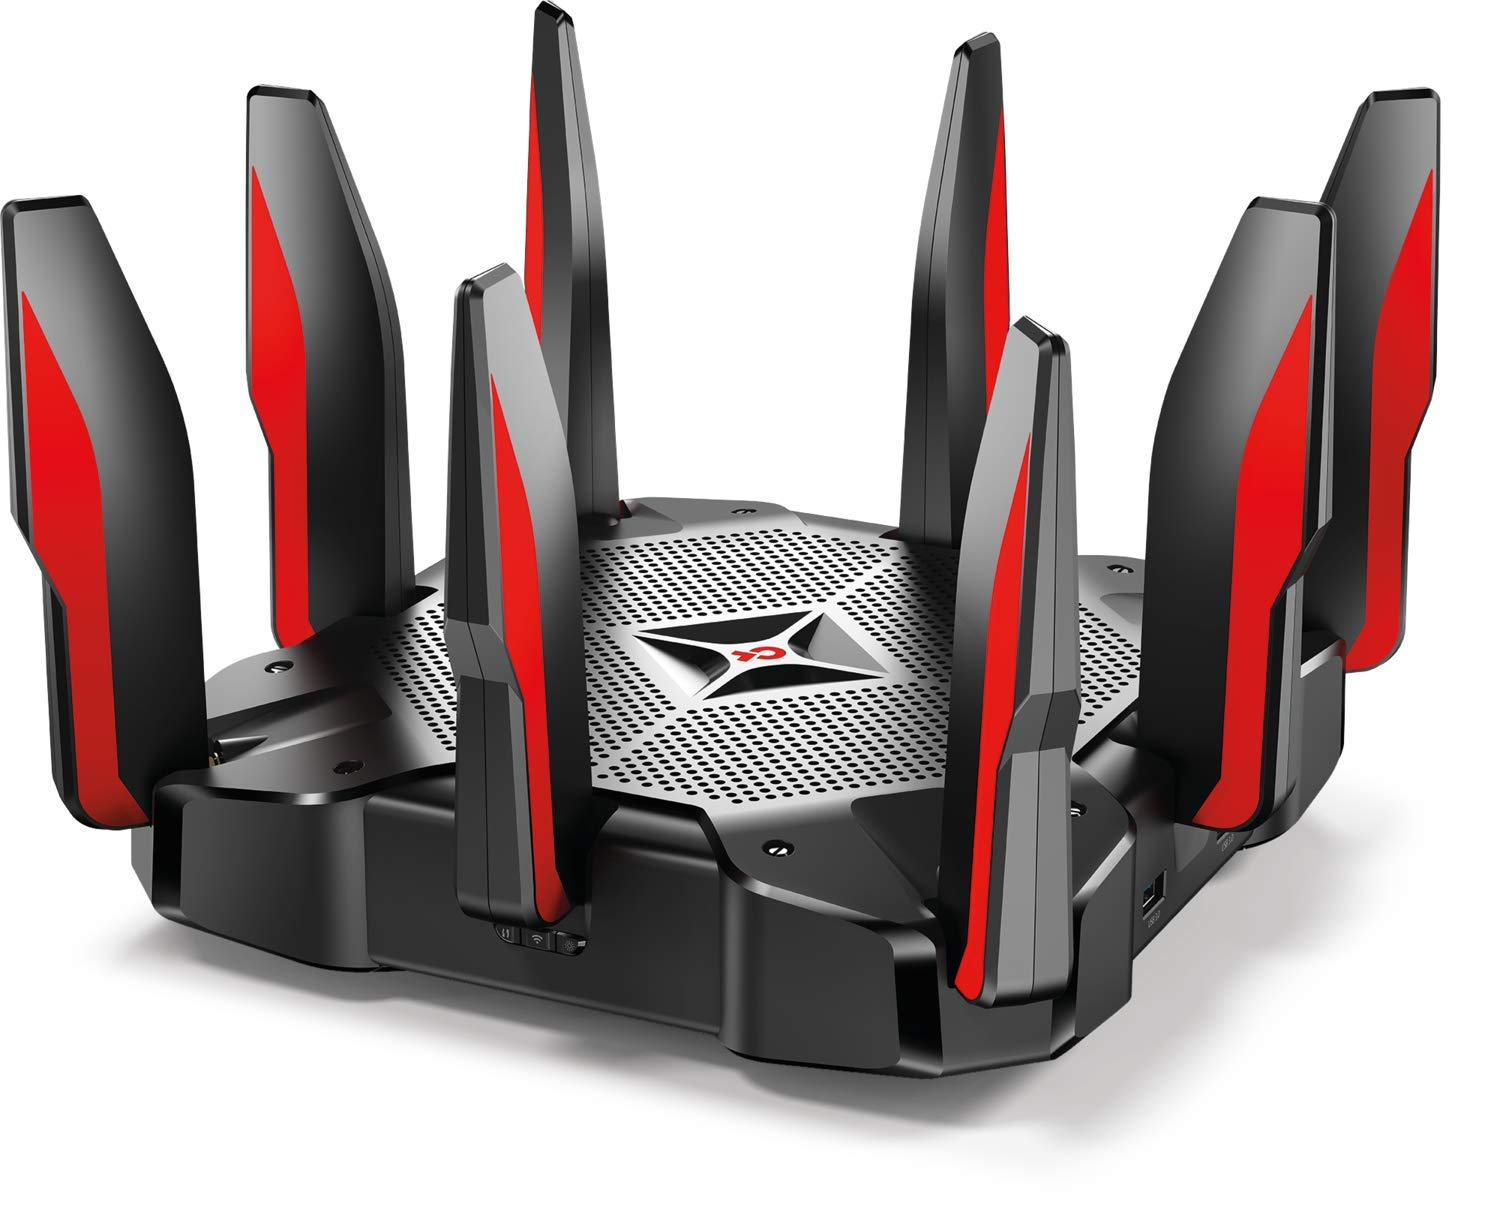 TP Link AC5400 Band Gaming Router